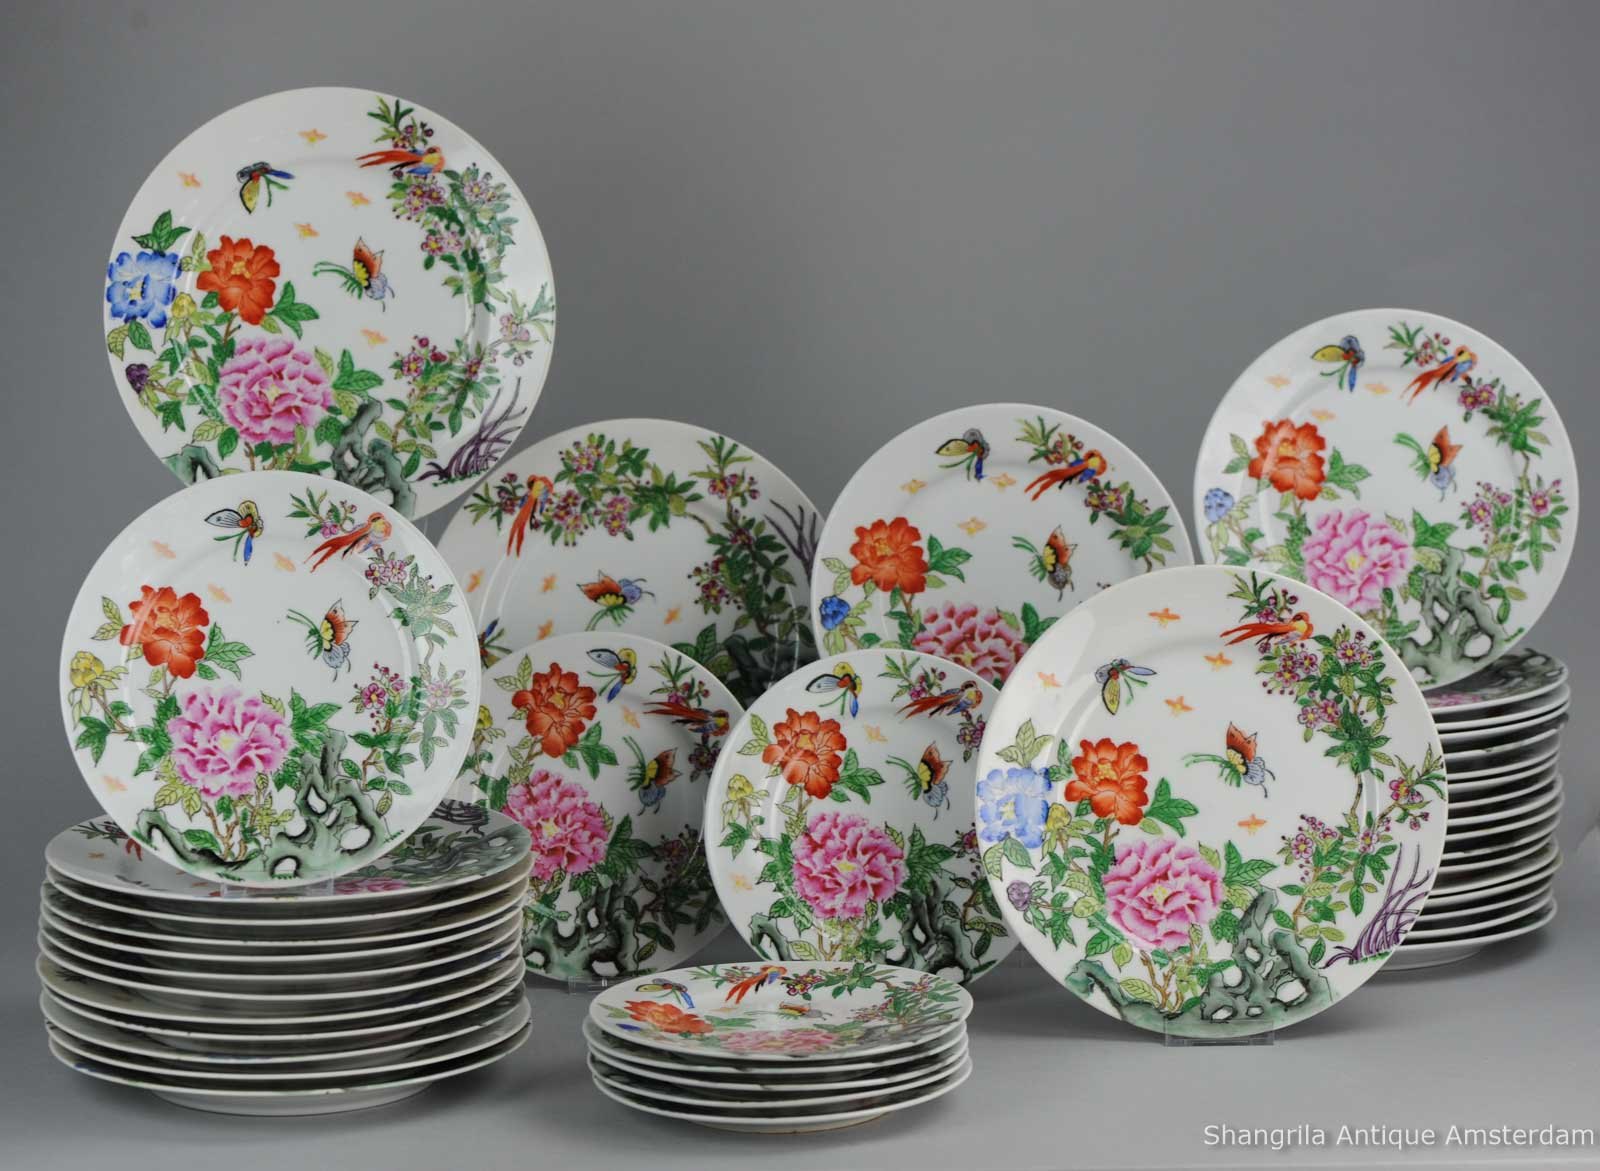 1970s Hong Kong or ProC Chinese Dinnerware set of 42 plates Qianlong Marked 1970s & Shangrila Antique